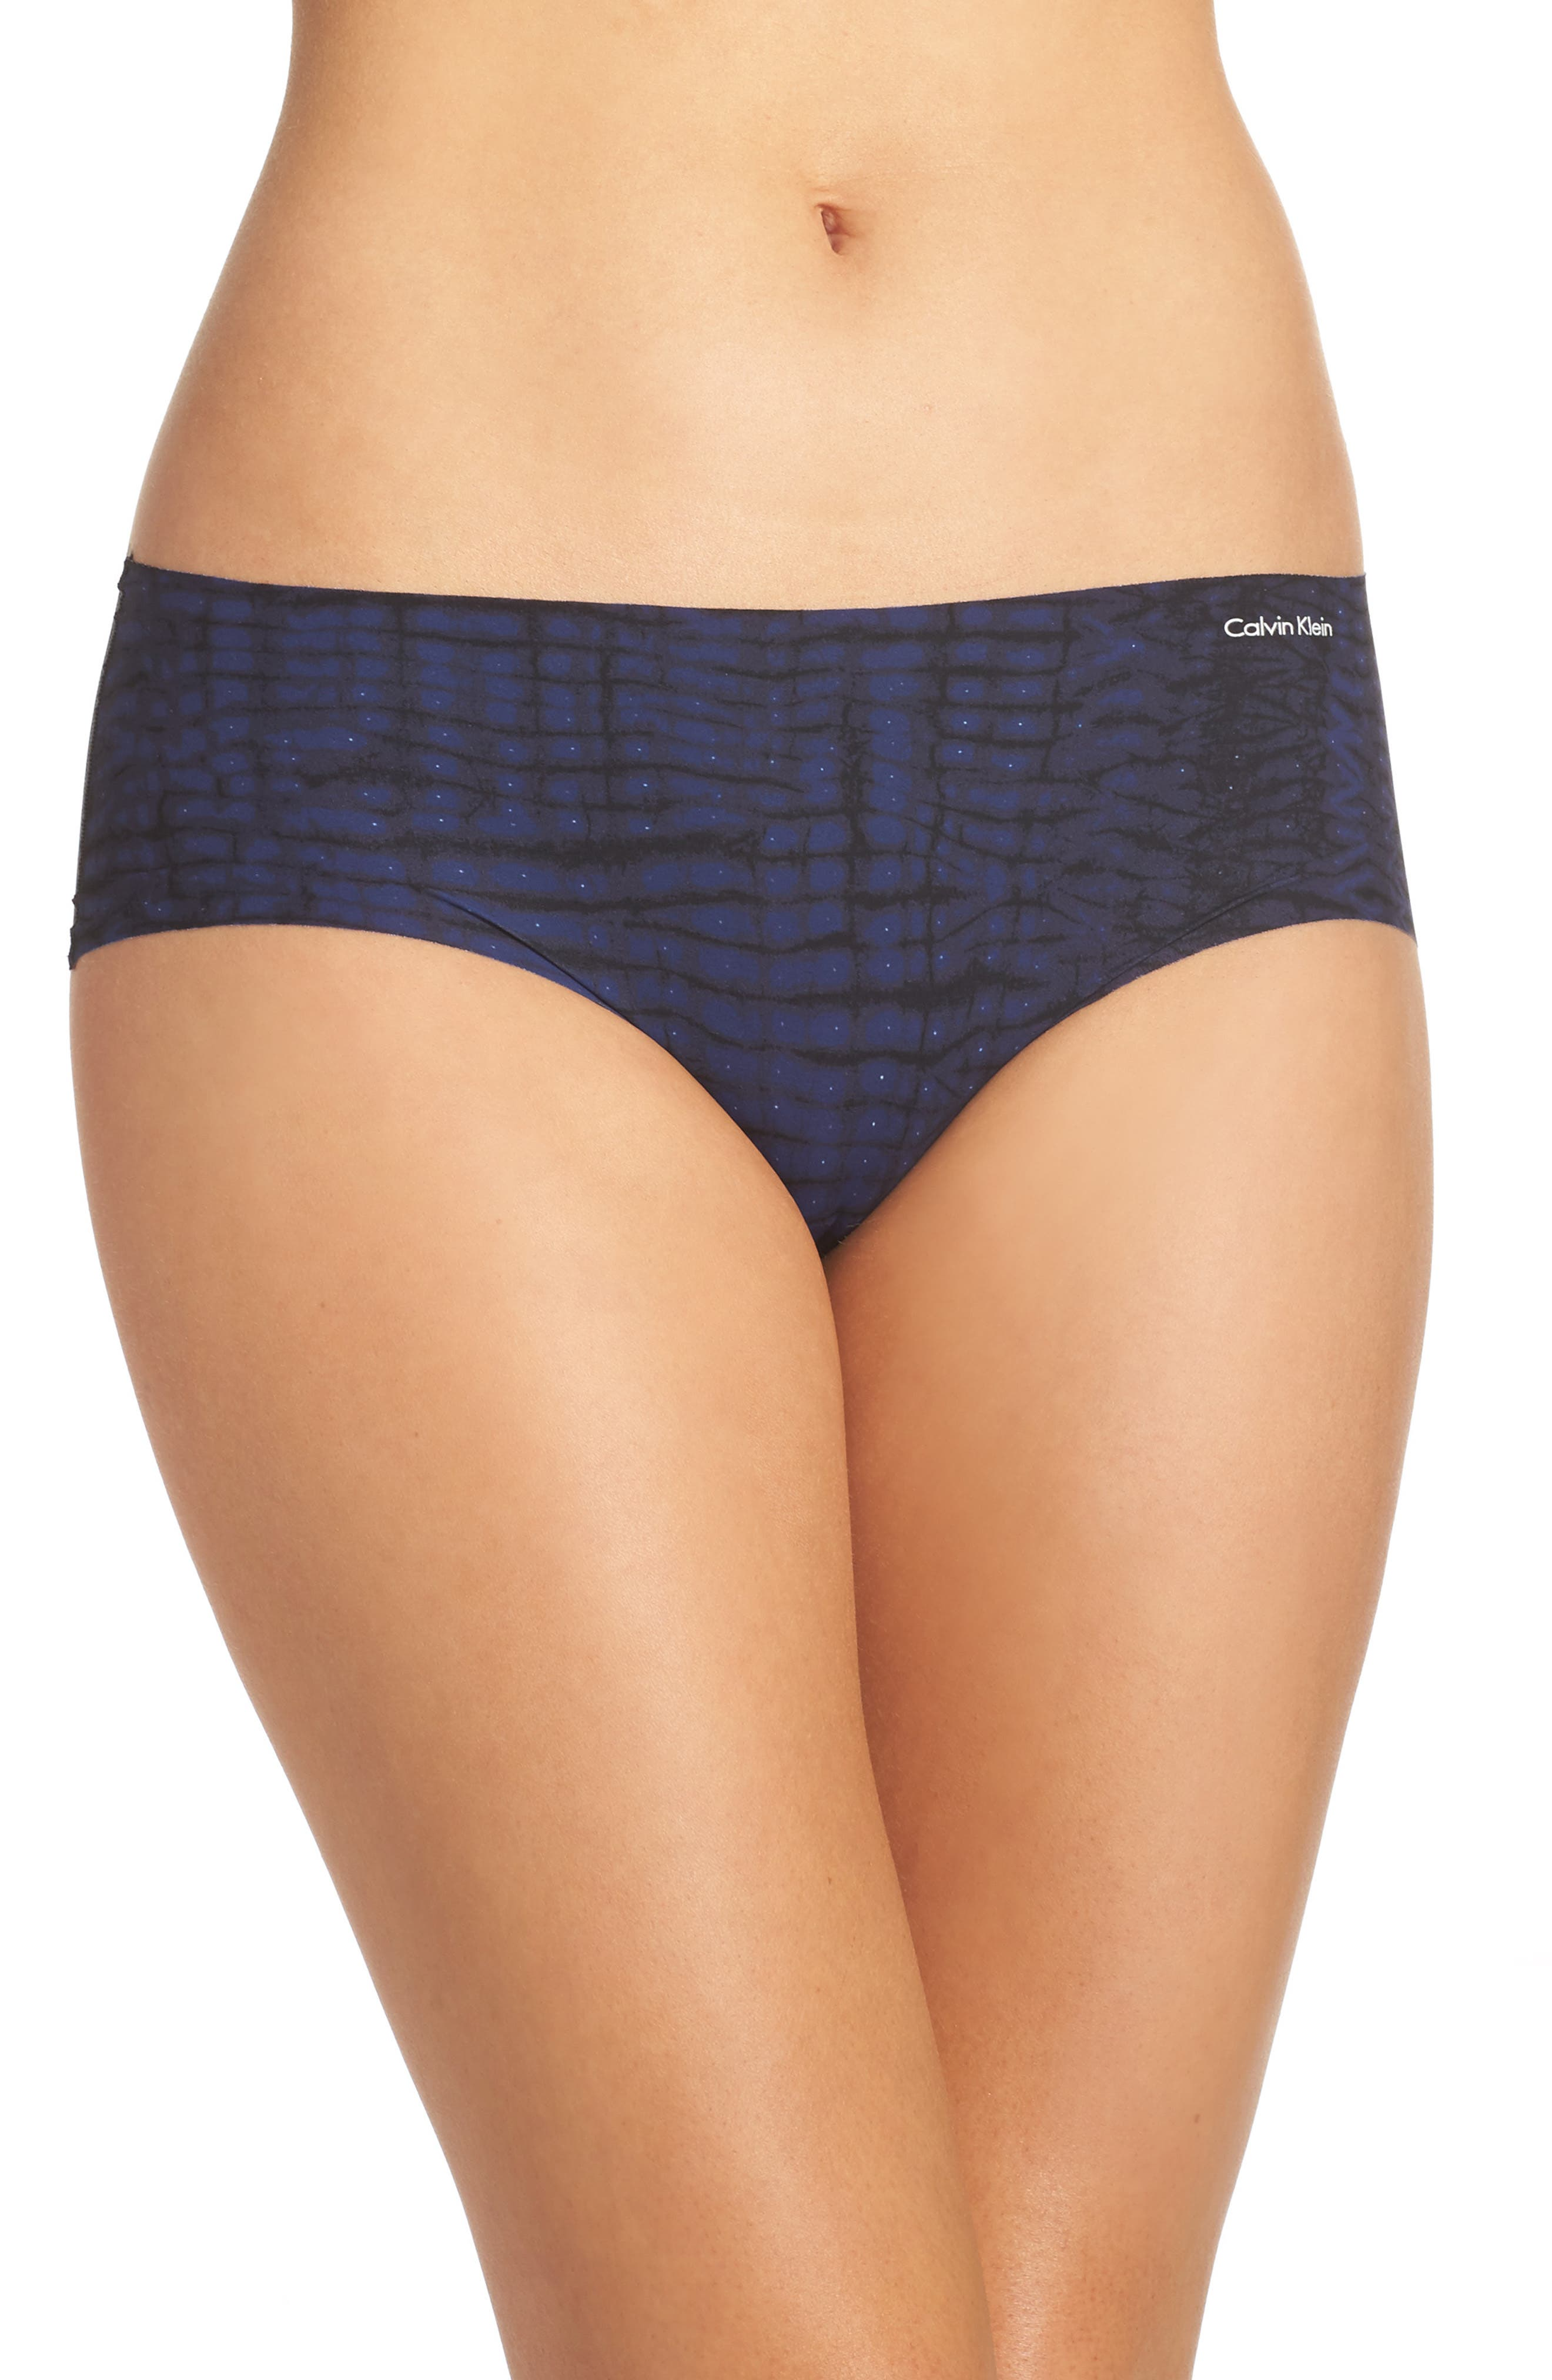 Alternate Image 1 Selected - Calvin Klein Invisibles Hipster Briefs (3 for $33)